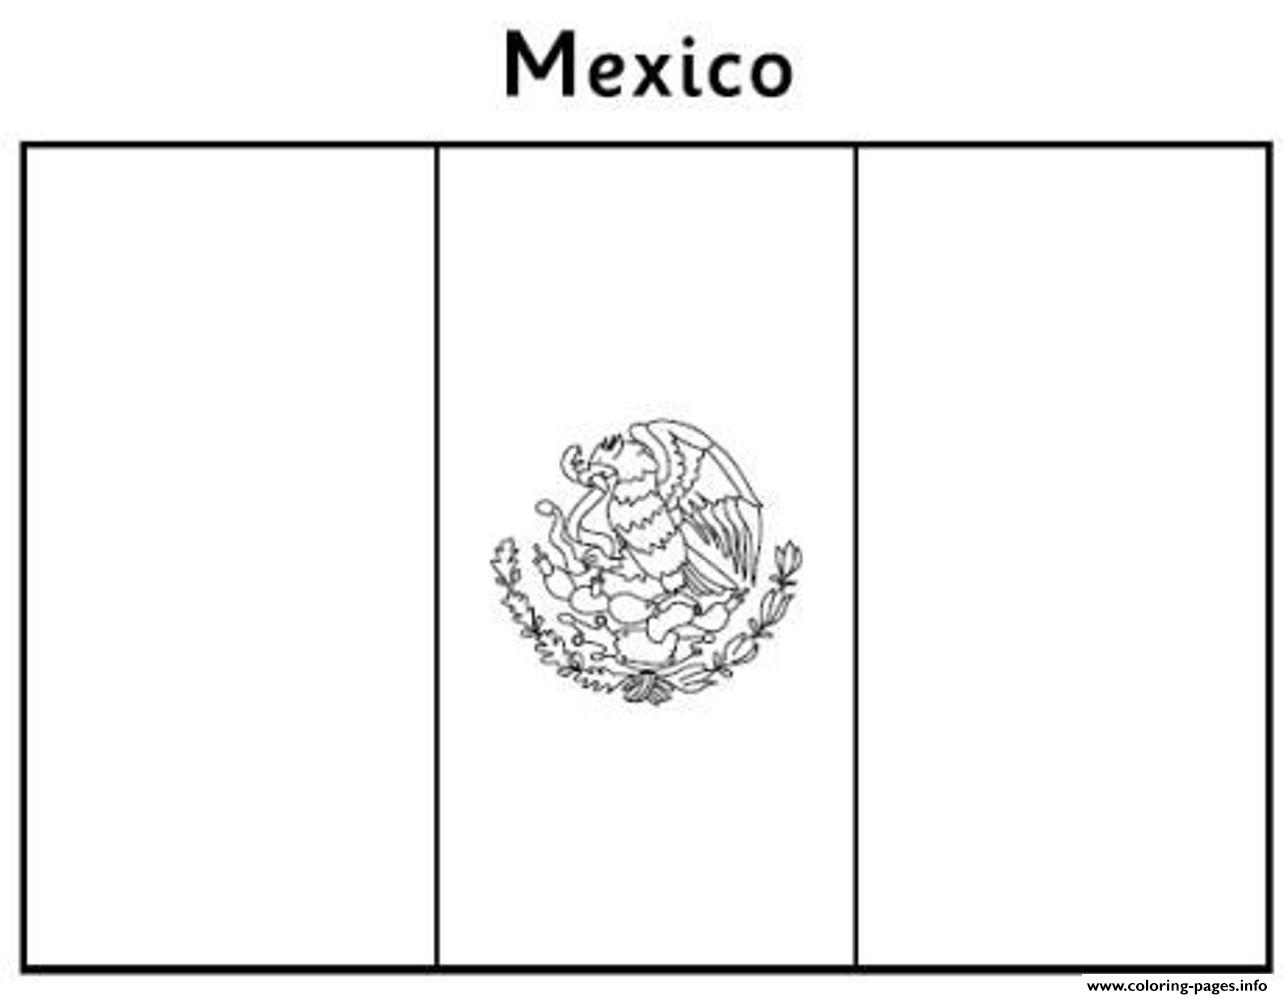 mexican flag template free mexican flag black and white download free clip art template mexican flag